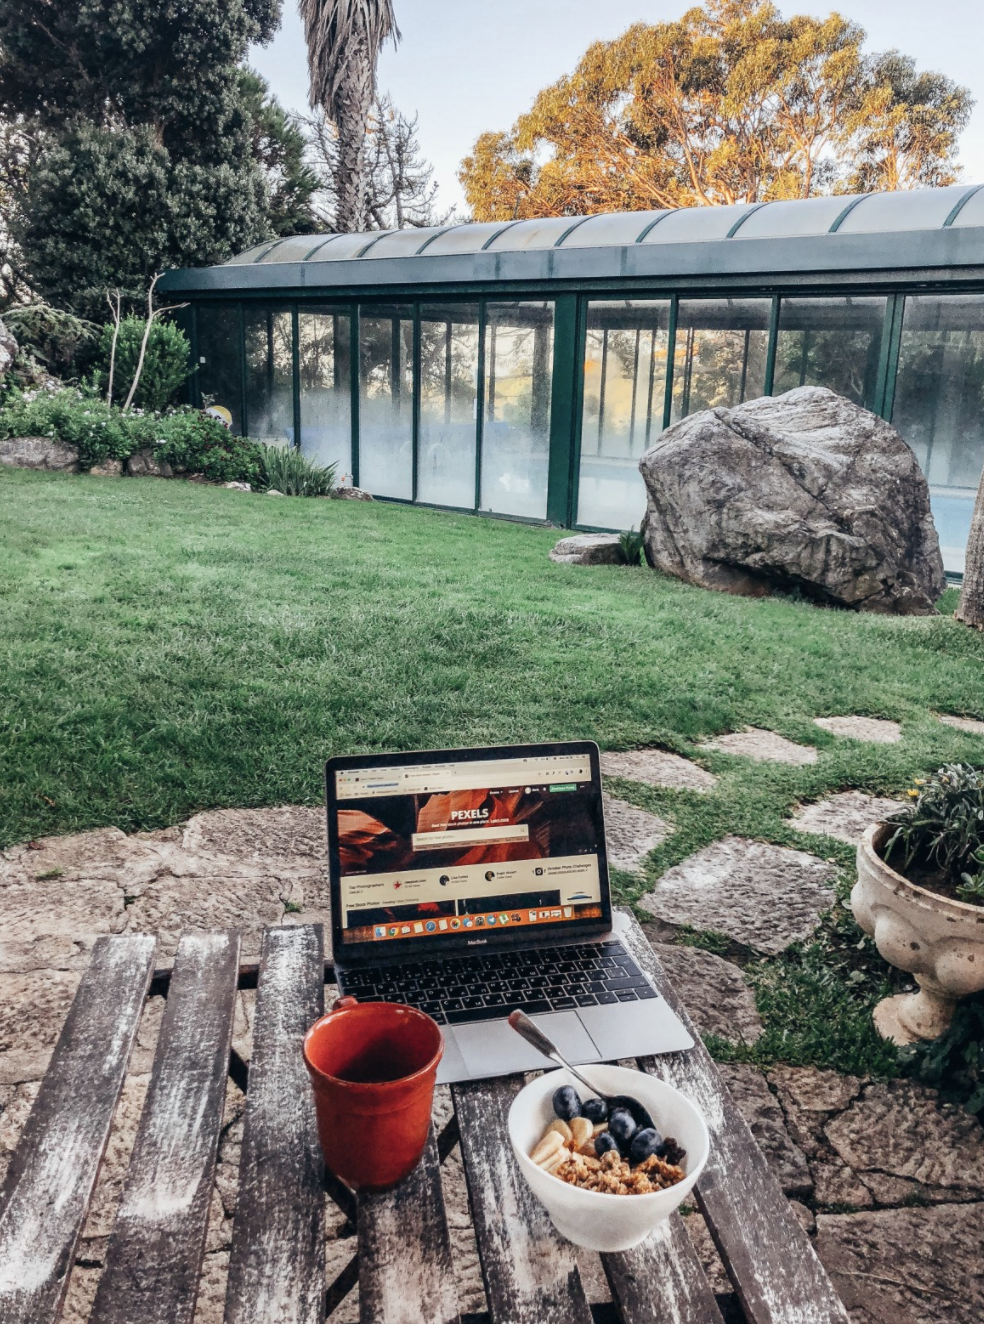 Difference Between Digital Nomad and Location Independent